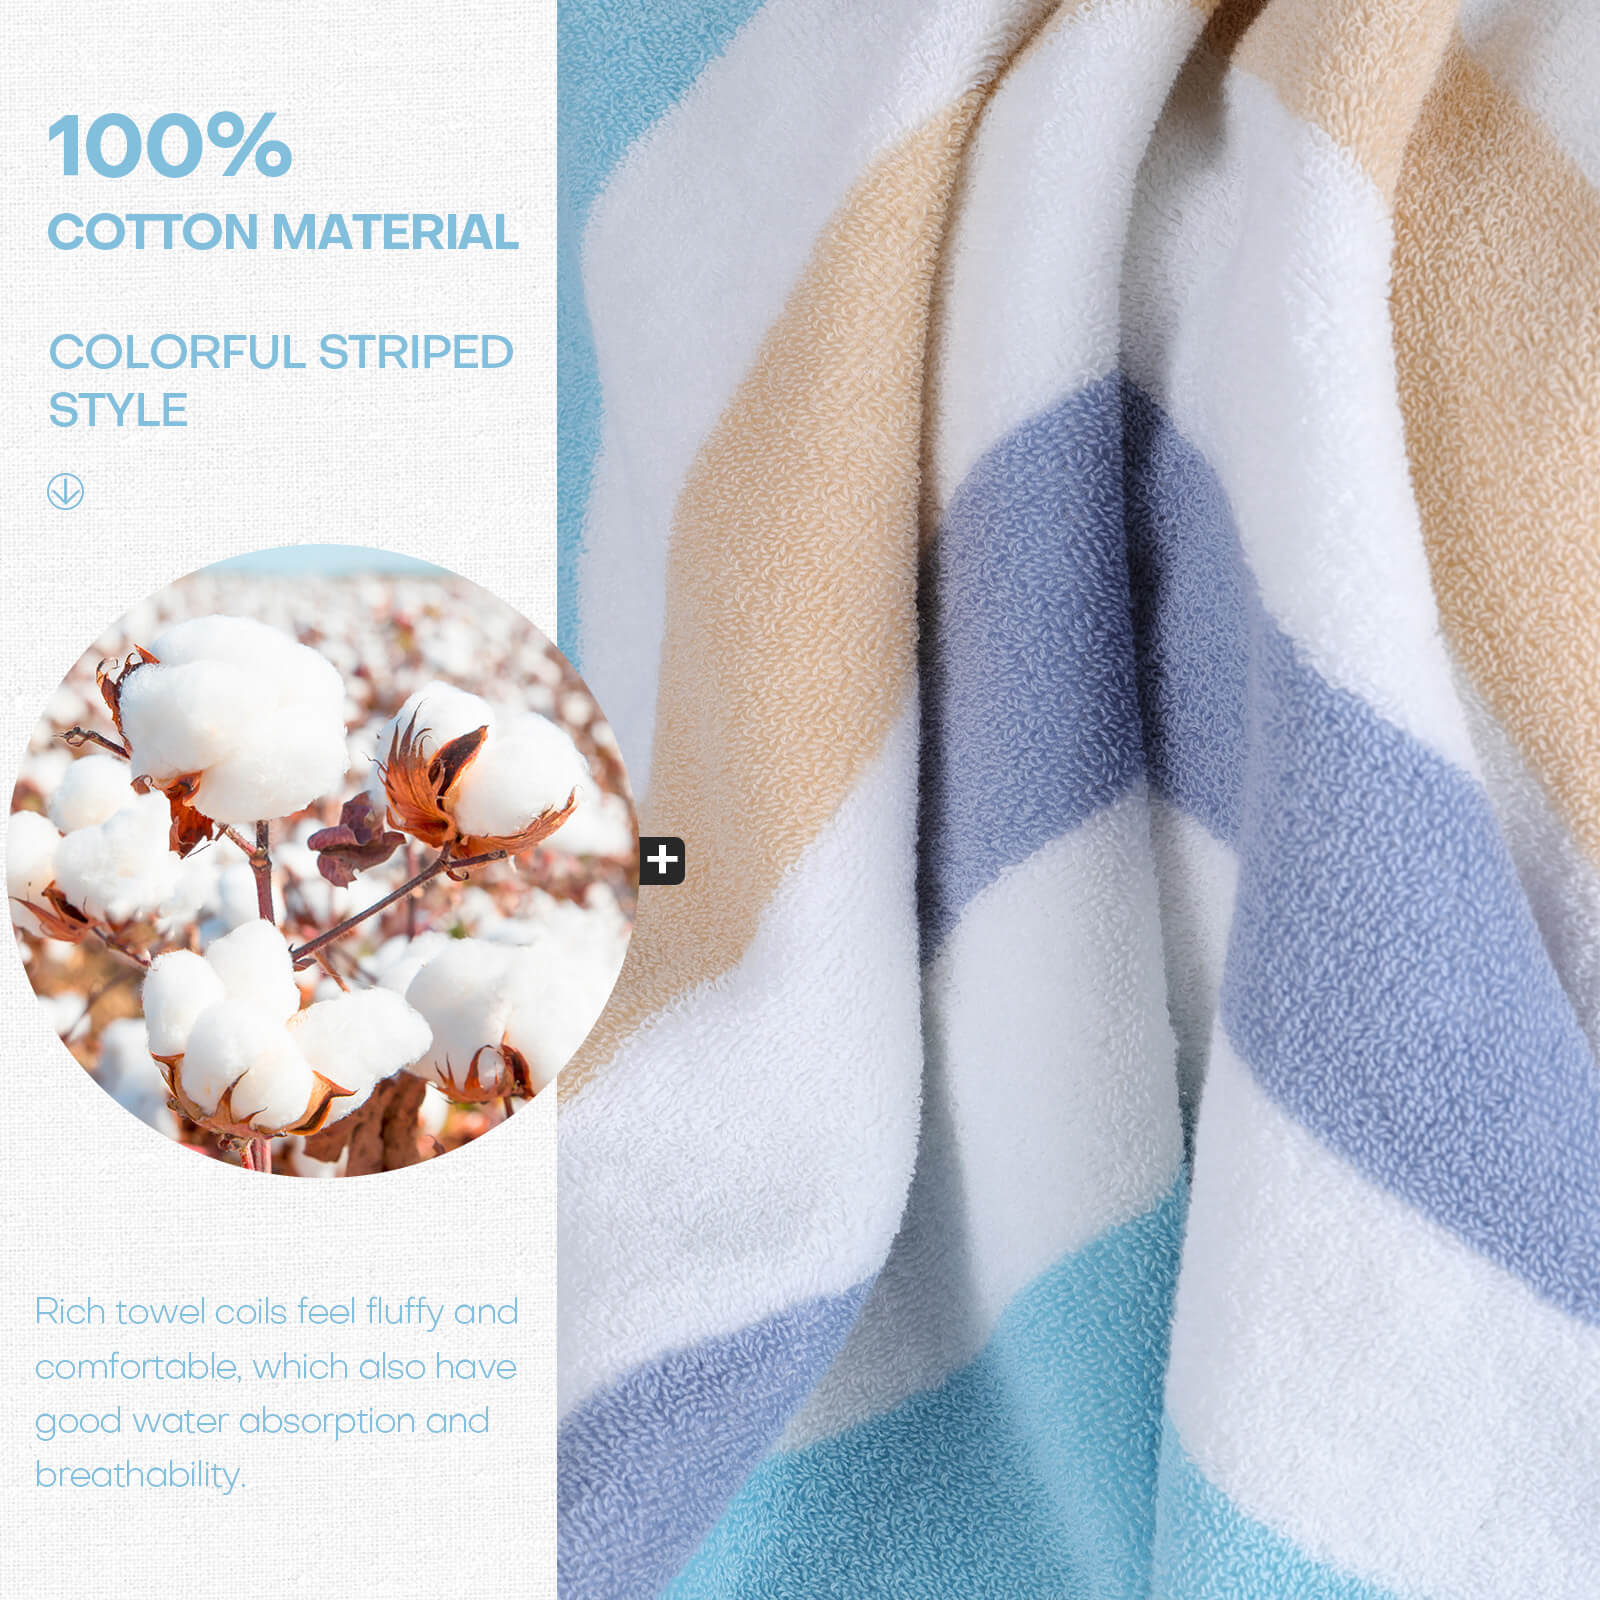 Material of the Egyptian cotton bath towel set